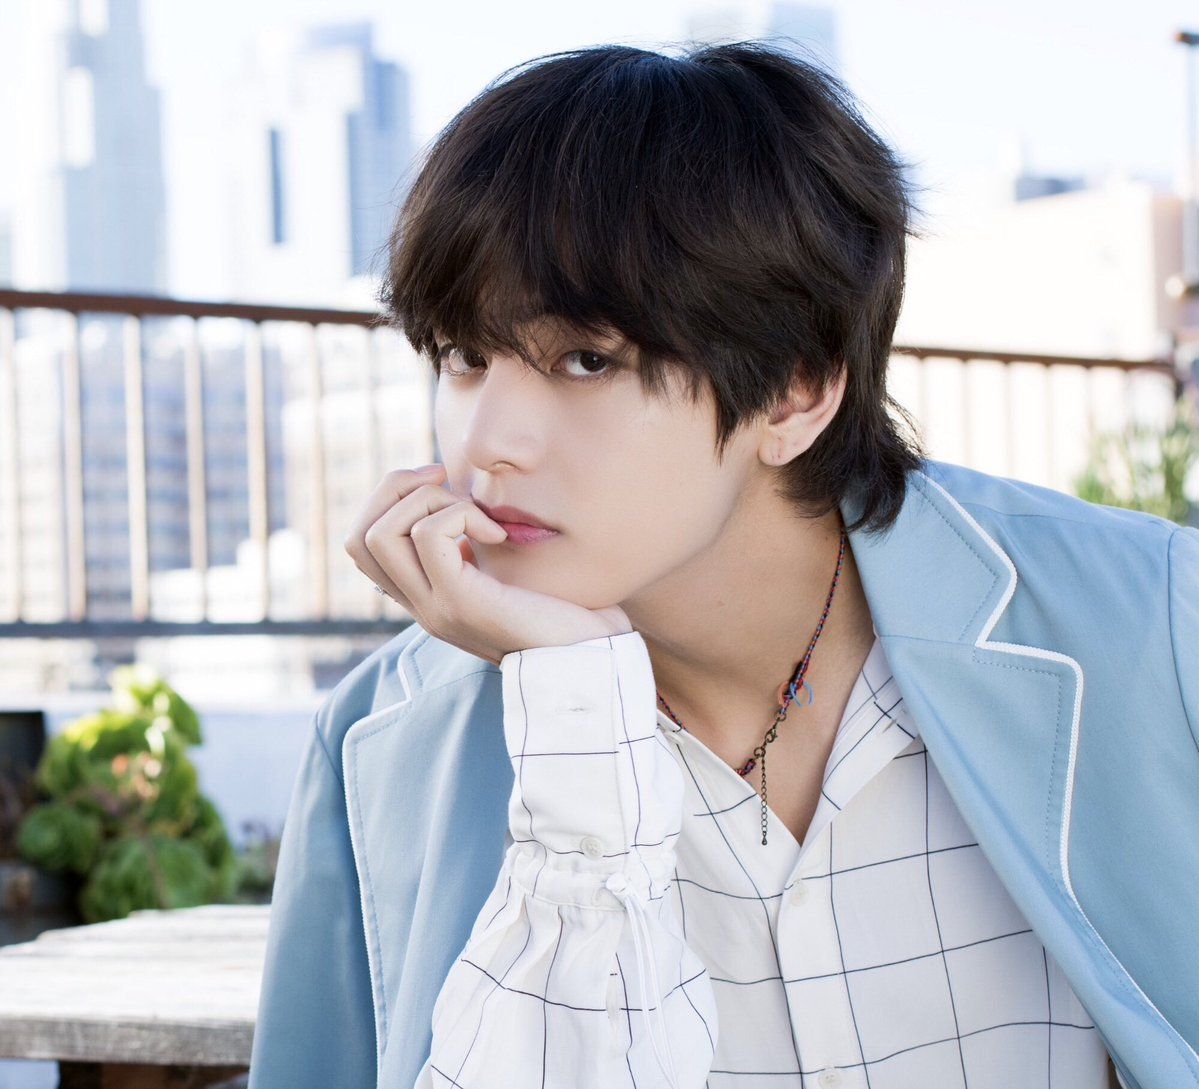 bts, bts profile, bts members, bts facts, bts age, bts height, bts weight, bts youngest, bts oldest, bts tallest, bts v, v